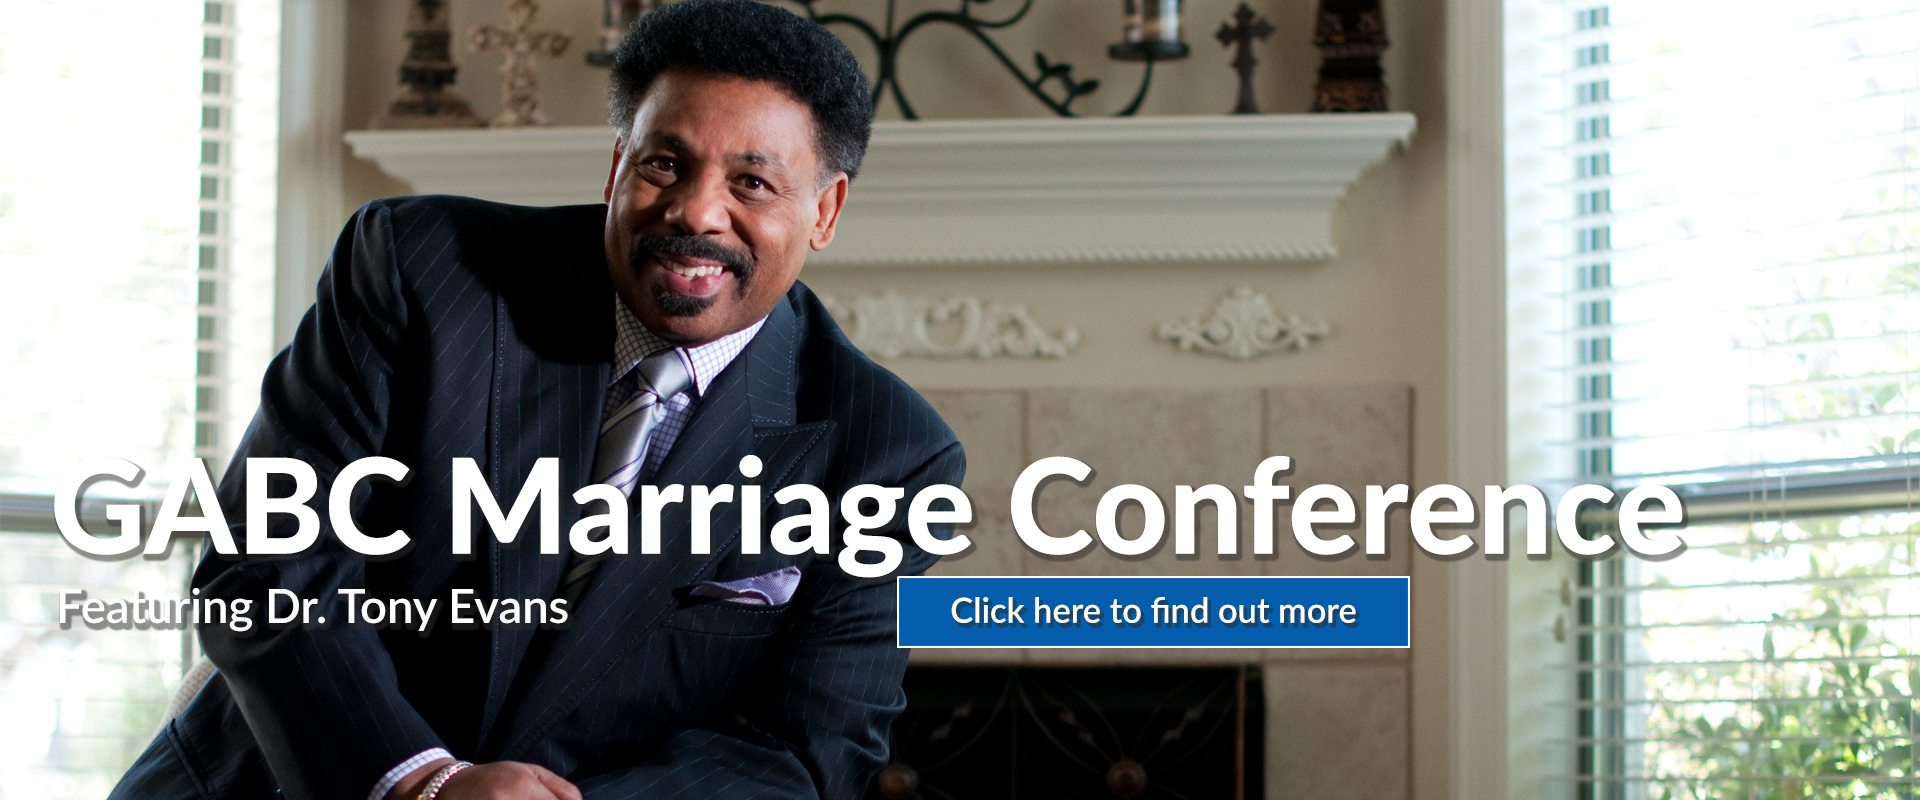 Green Acres Baptist Church Marriage Conference with Dr. Tony Evans